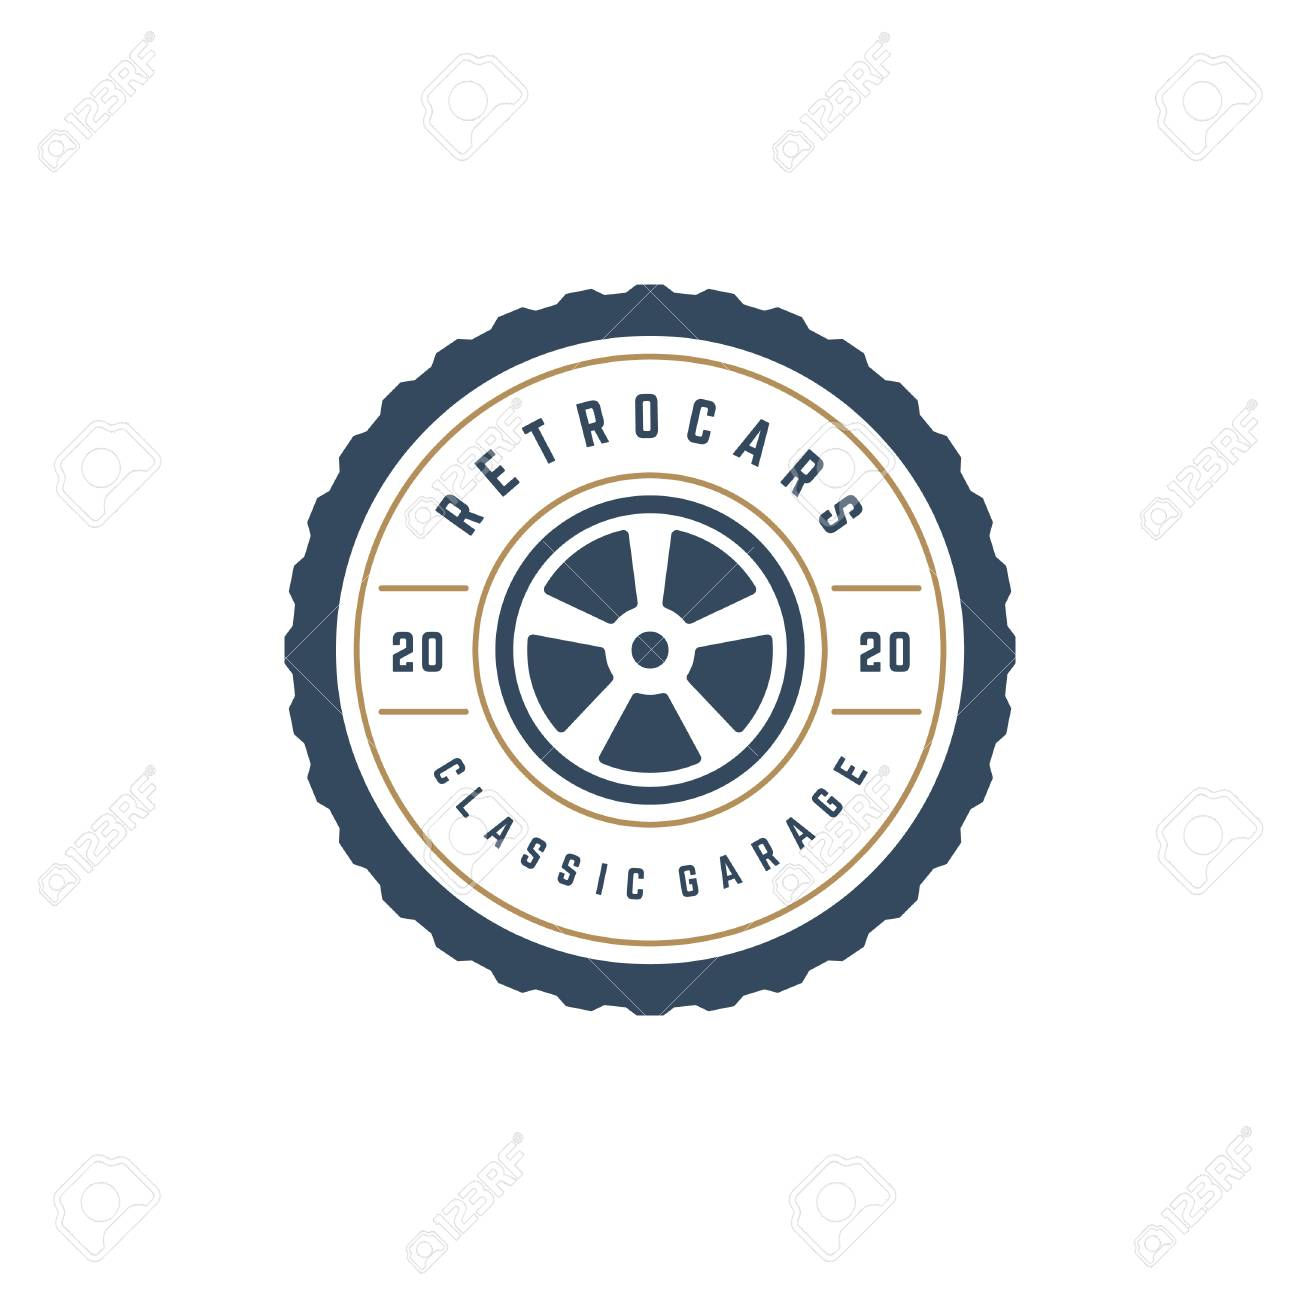 Car Wheel Logo Template Vector Design Element Vintage Style For Label Or Badge Retro Illustration Tire Silhouette Royalty Free Cliparts Vetores E Ilustracoes Stock Image 85239833